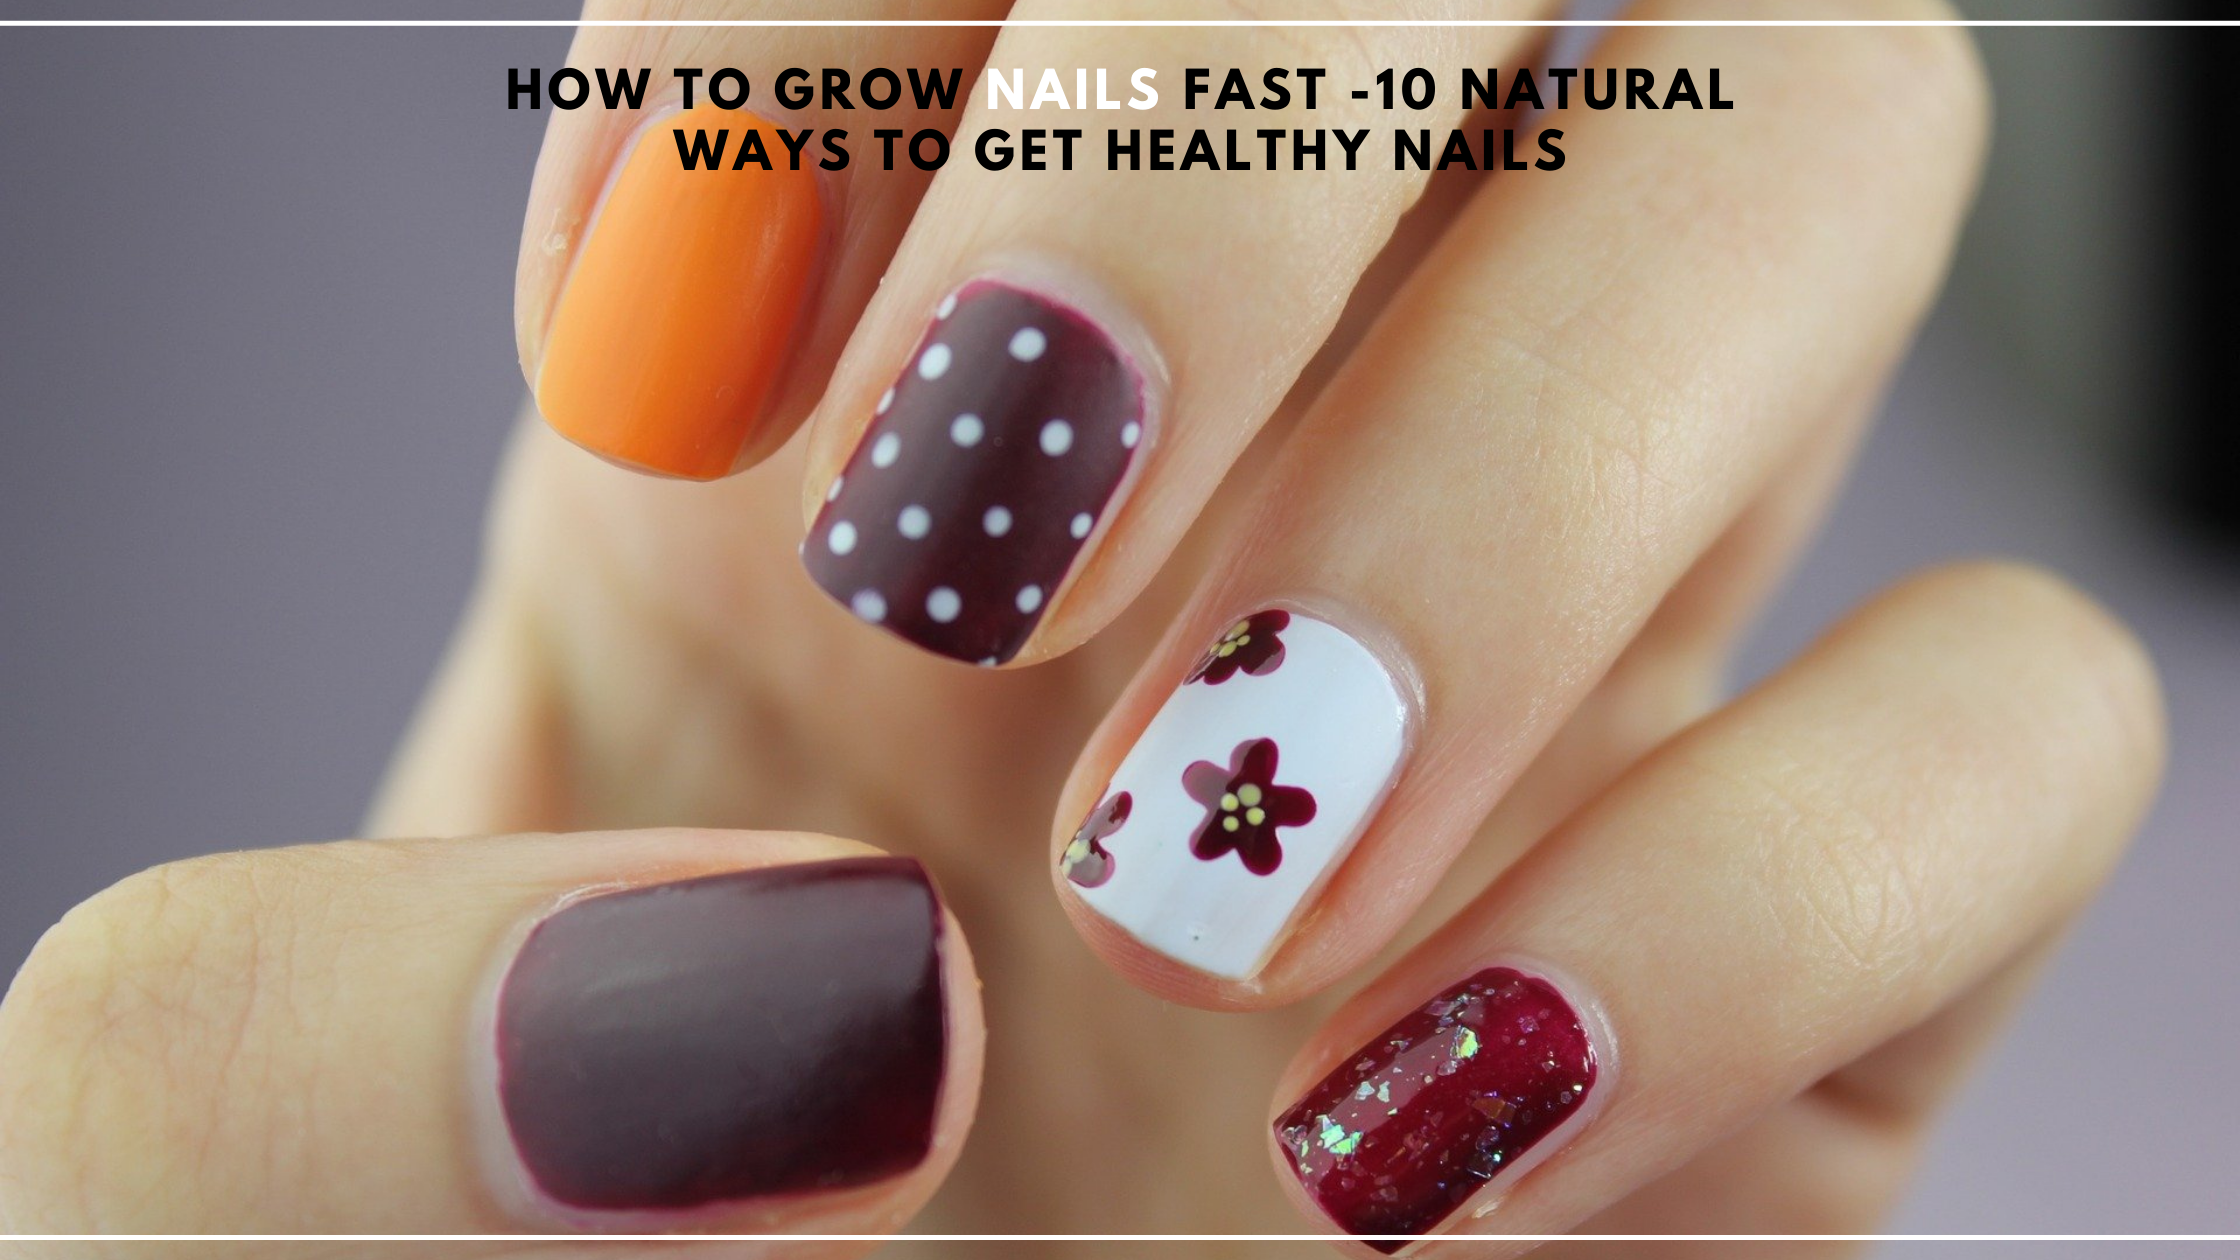 How to Grow Nails Fast -10 Natural Ways to Get Healthy Nails